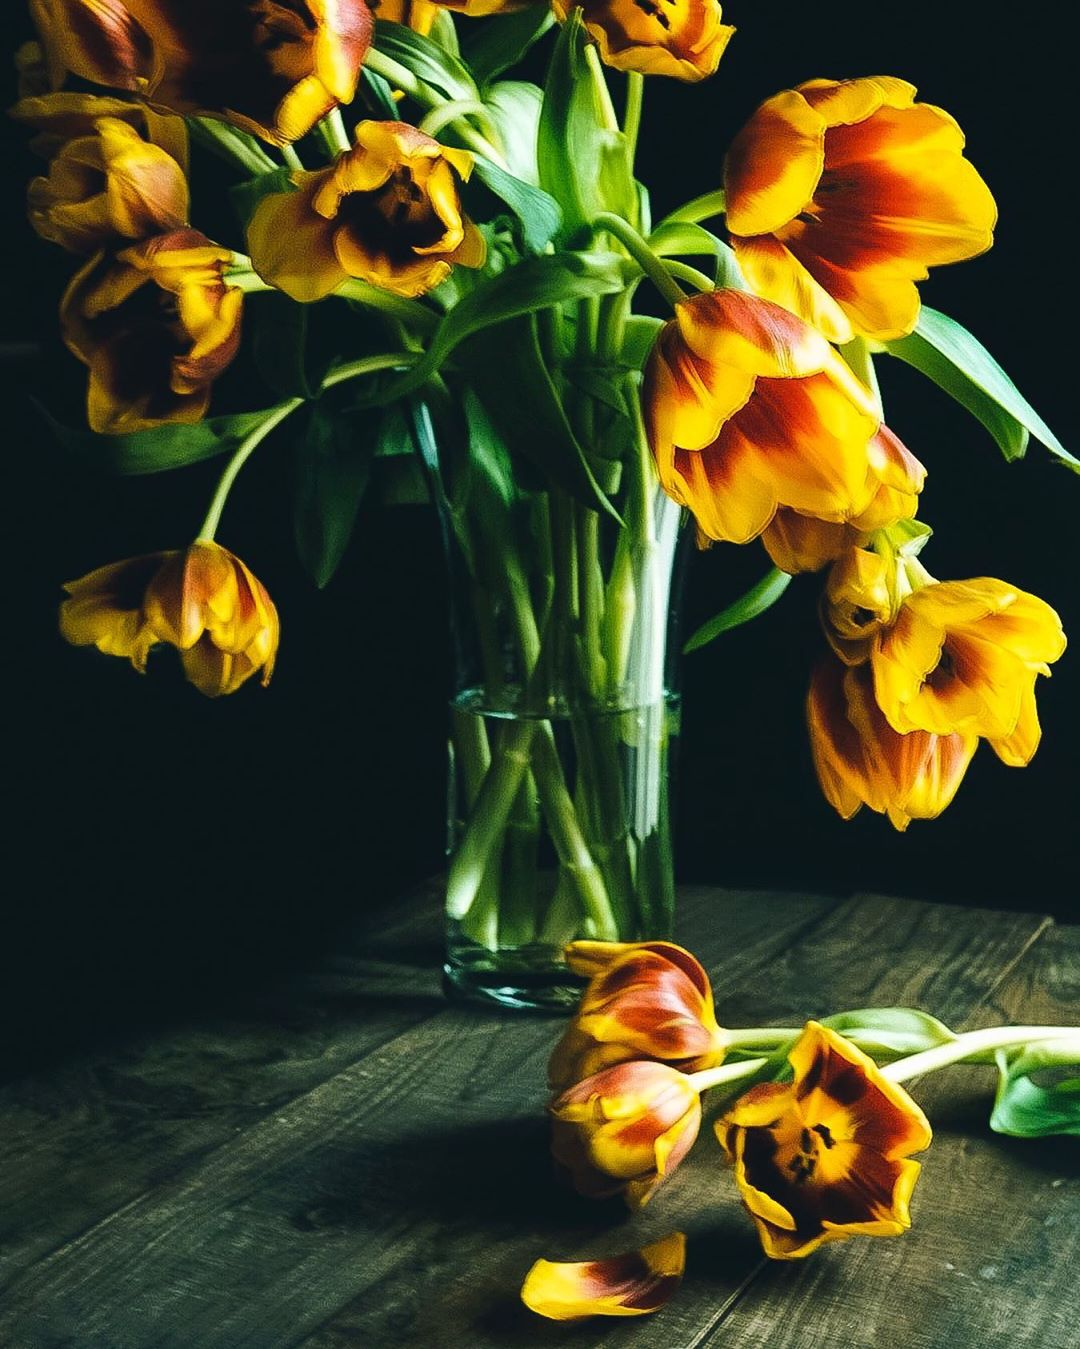 Still life image with tulips by Joe Oetemo